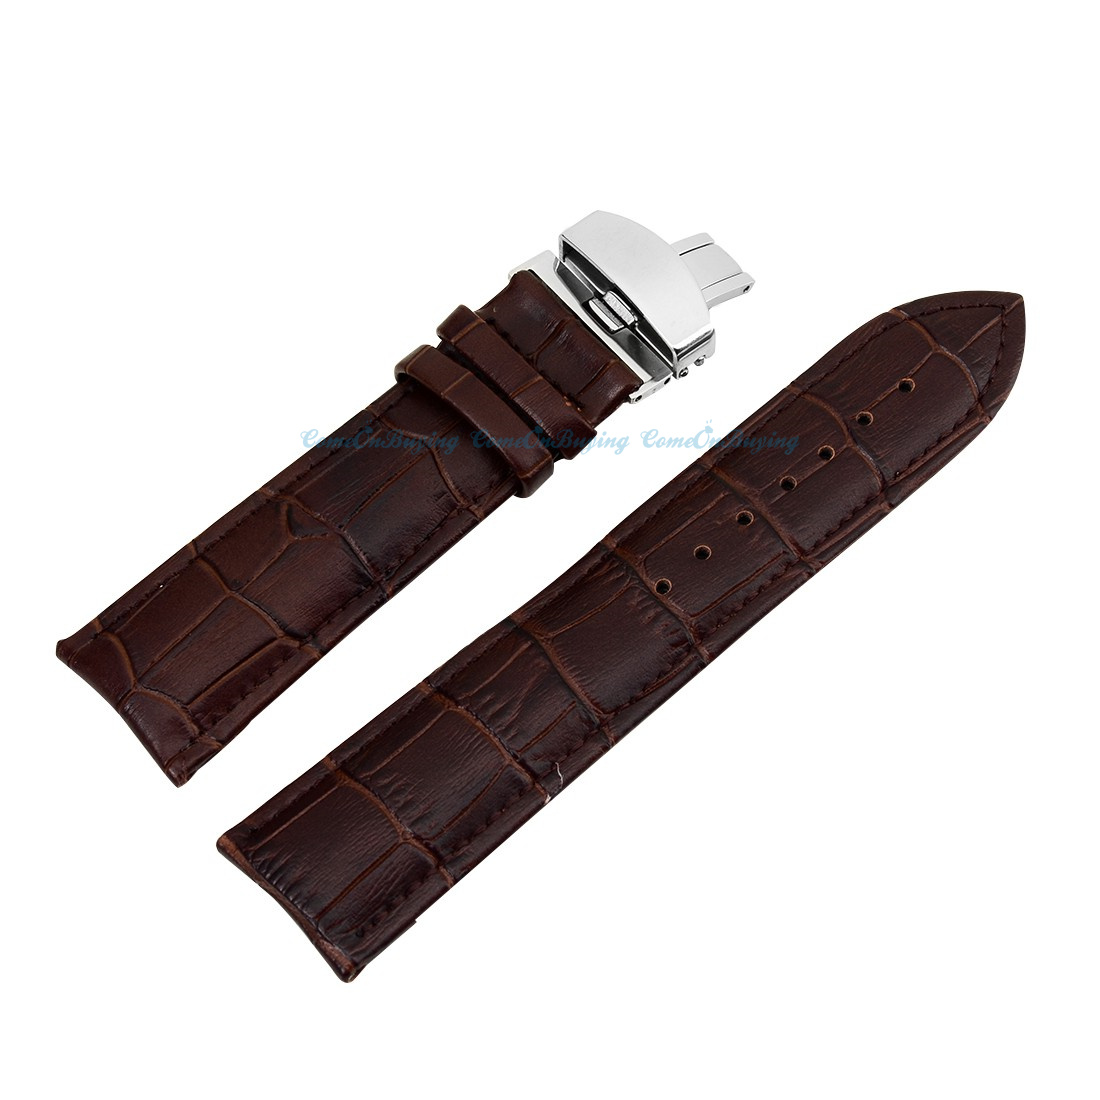 Quality Genuine Leather Crocodile Stainless Steel Hasp Buckle Watch Strap Band